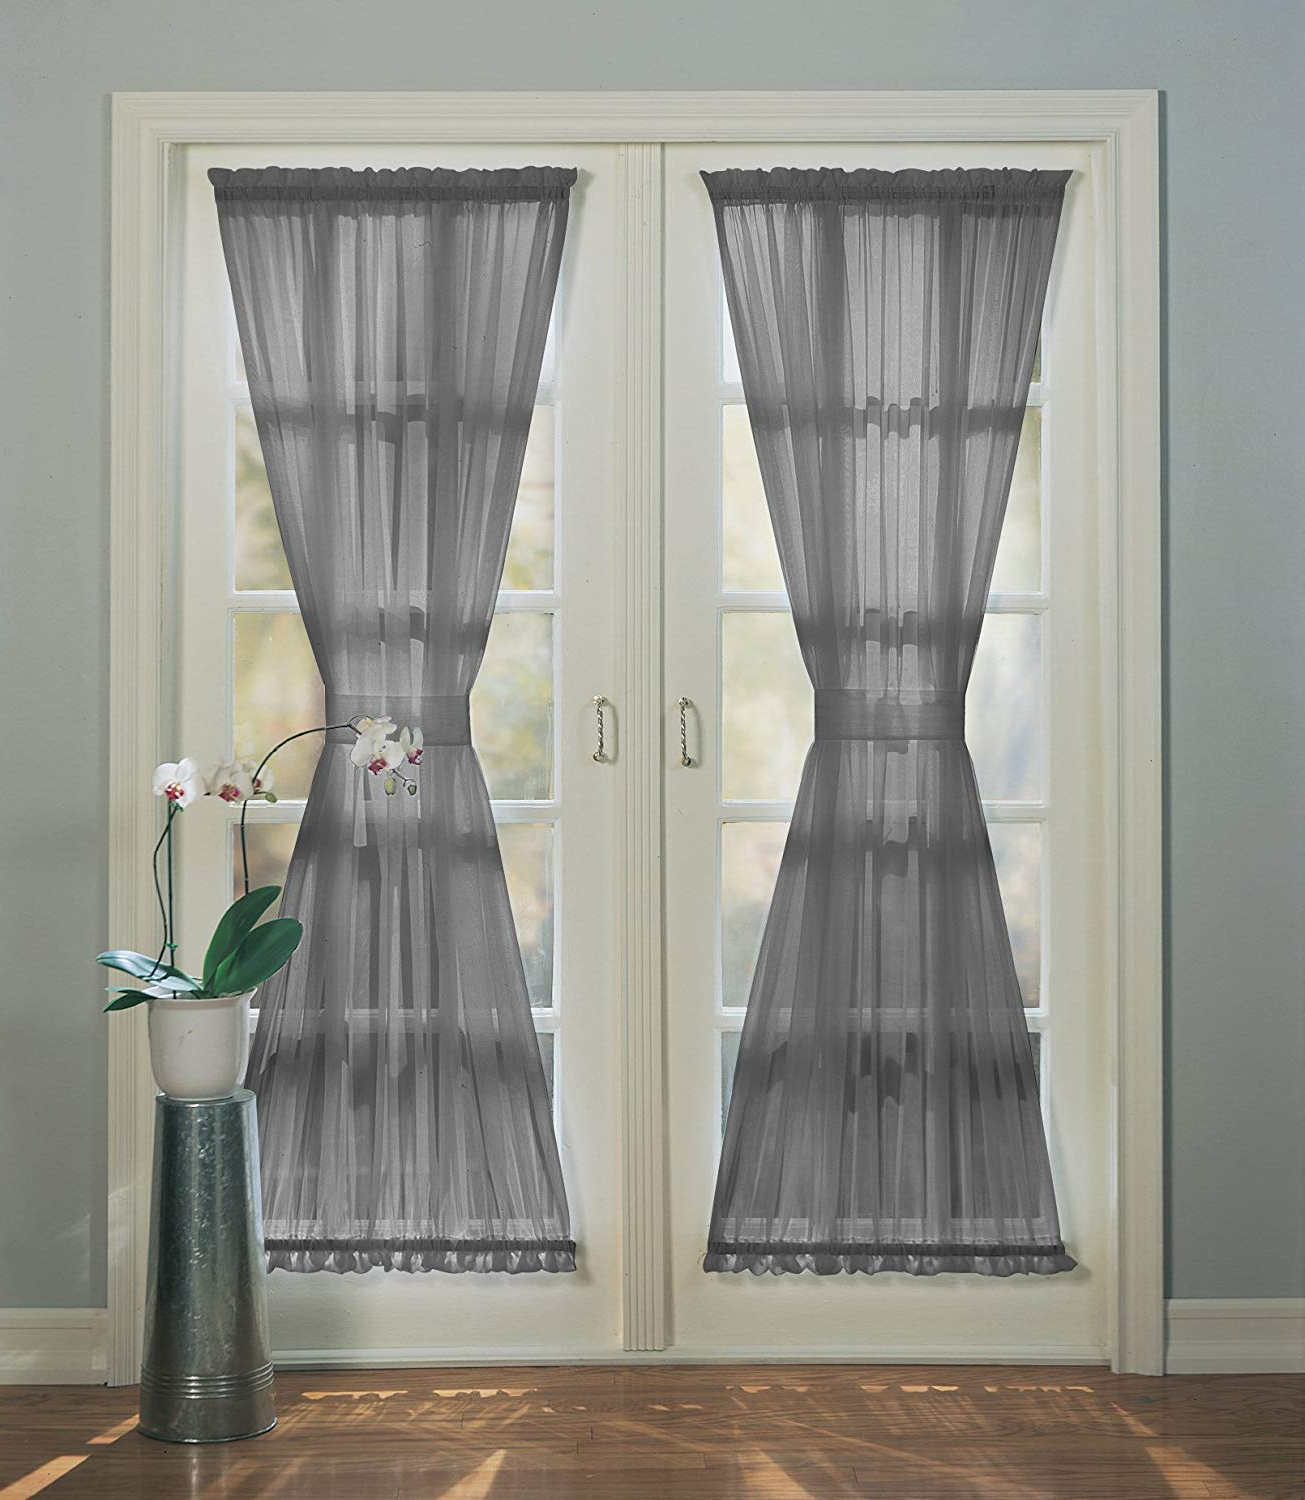 "Emily Sheer Voile Solid Single Patio Door Curtain Panels Within Widely Used No. 918 Emily Sheer Voile Single Curtain Door Panel 59"" X 72"", Charcoal Gray (Gallery 2 of 20)"